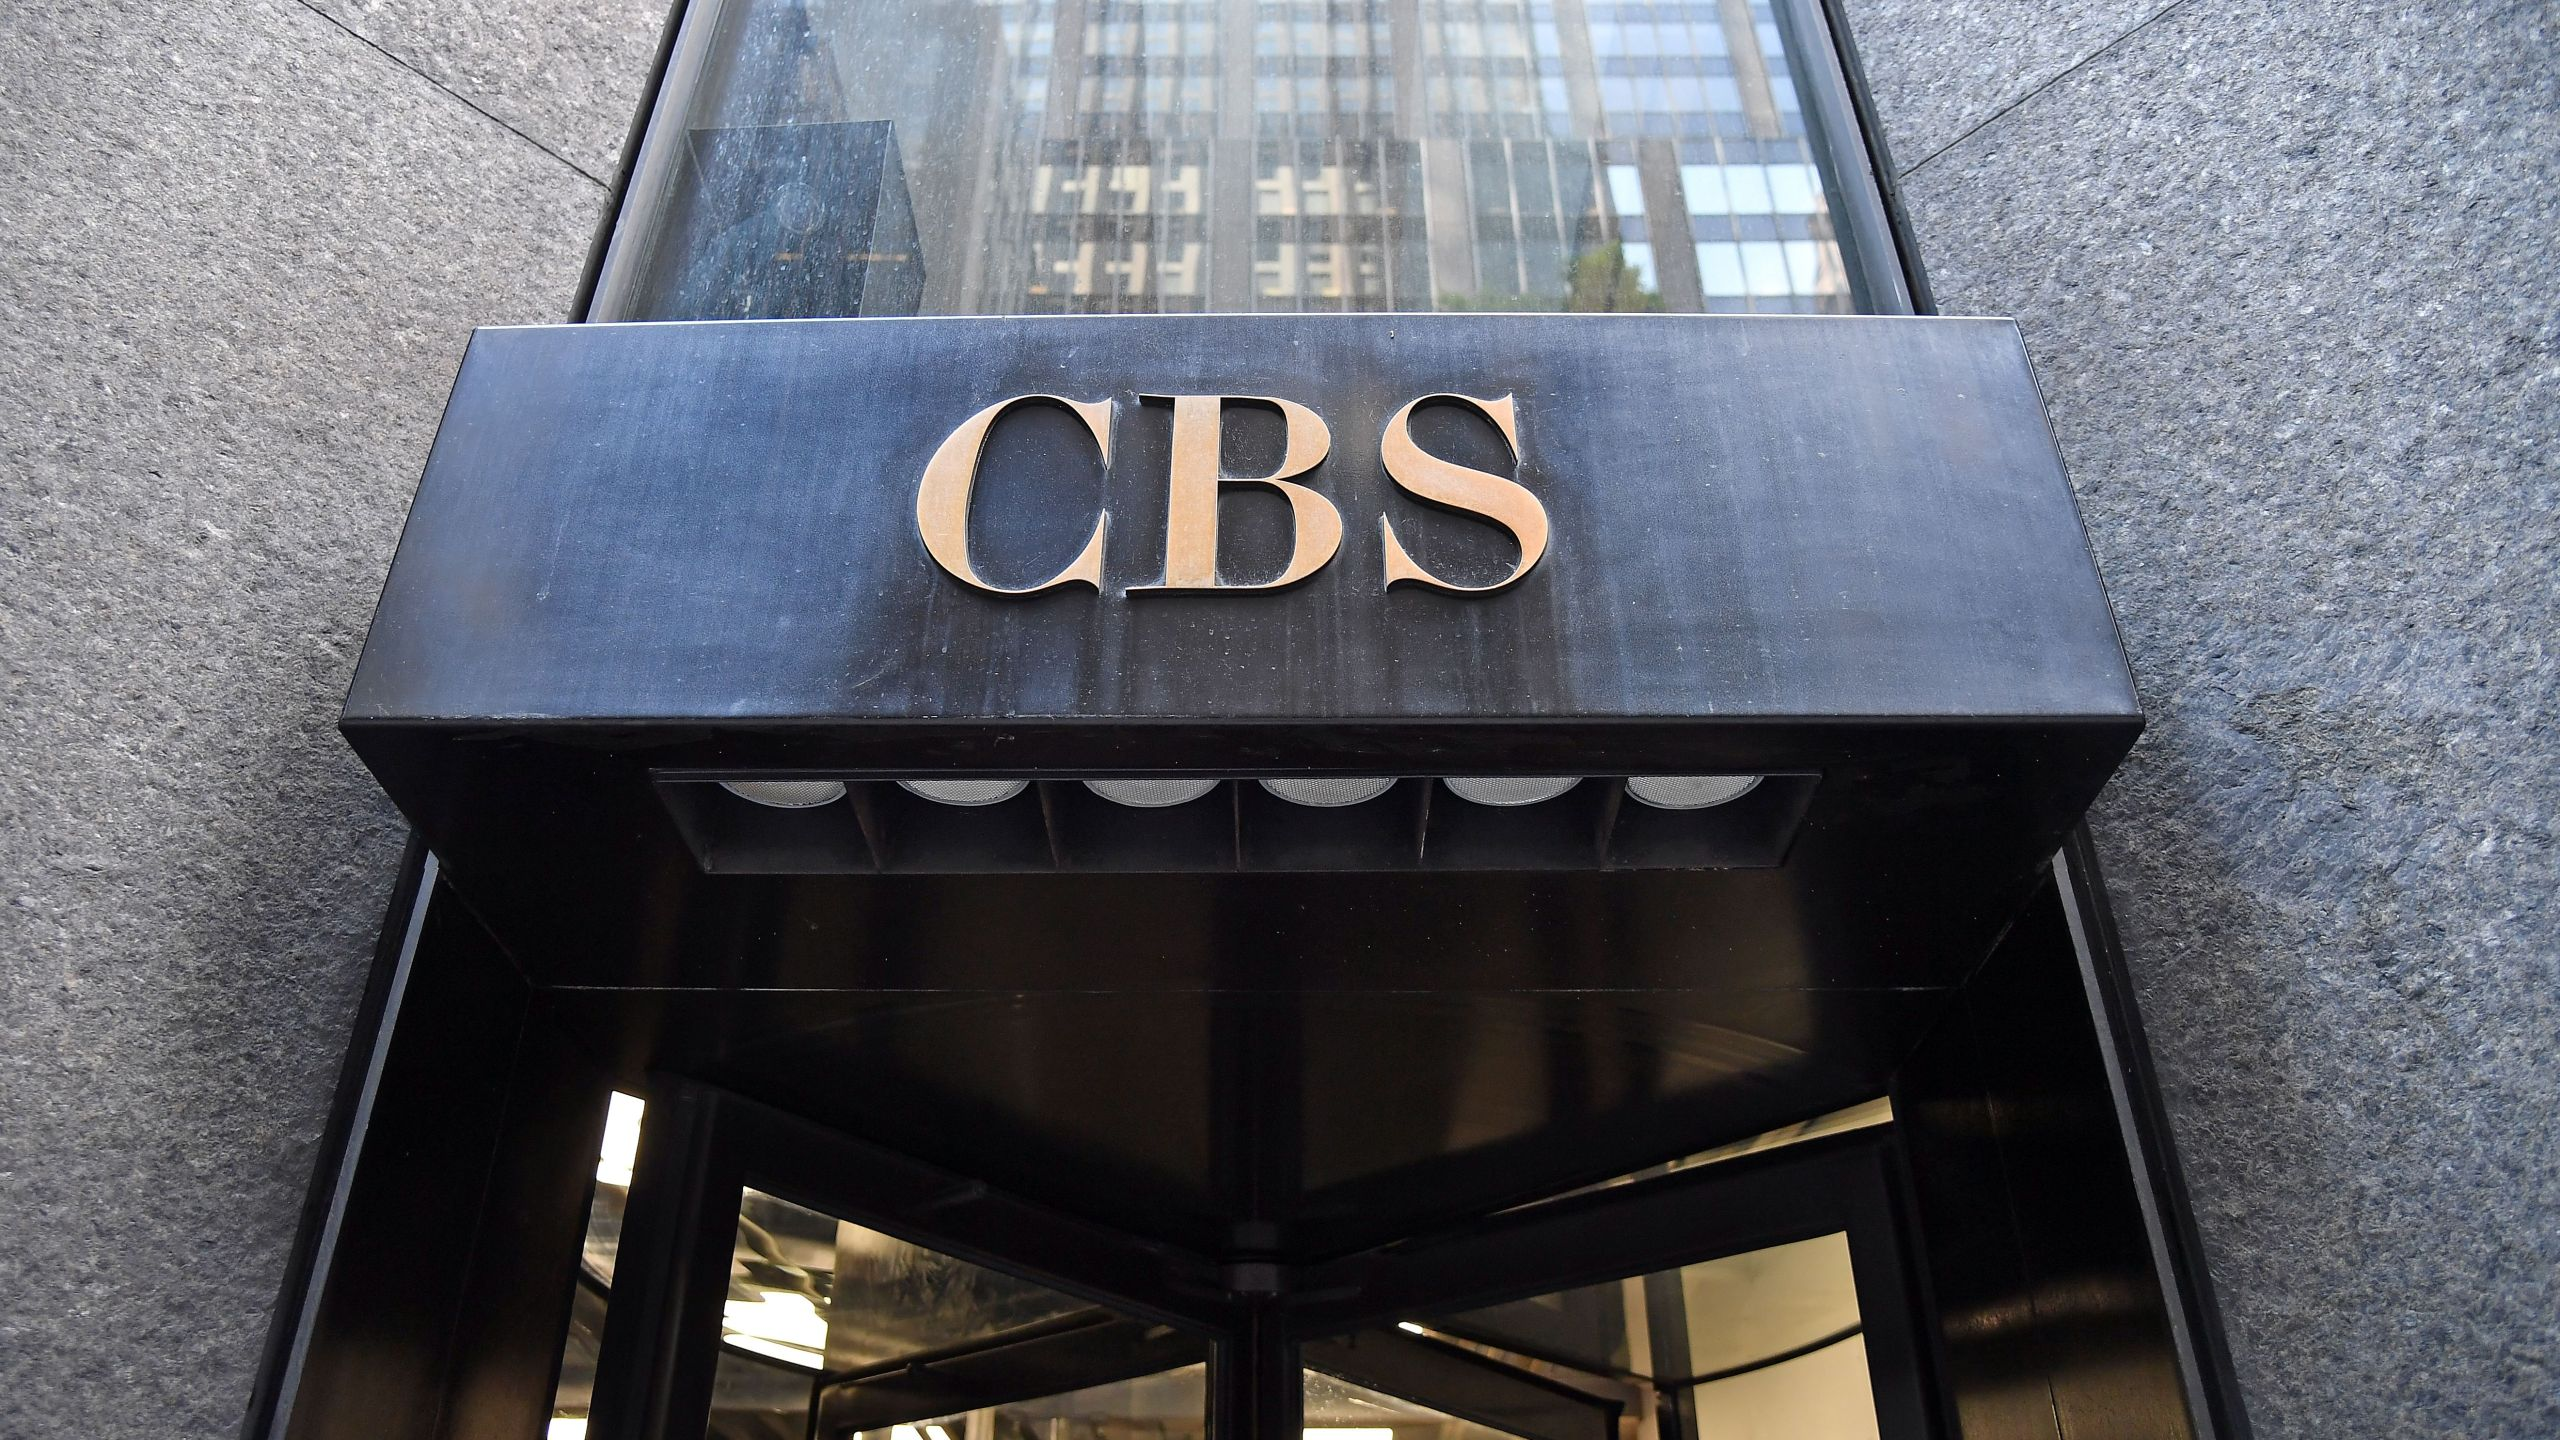 The CBS logo is seen at headquarters of the CBS Corporation, in New York City on August 6, 2018. (ANGELA WEISS/AFP via Getty Images)